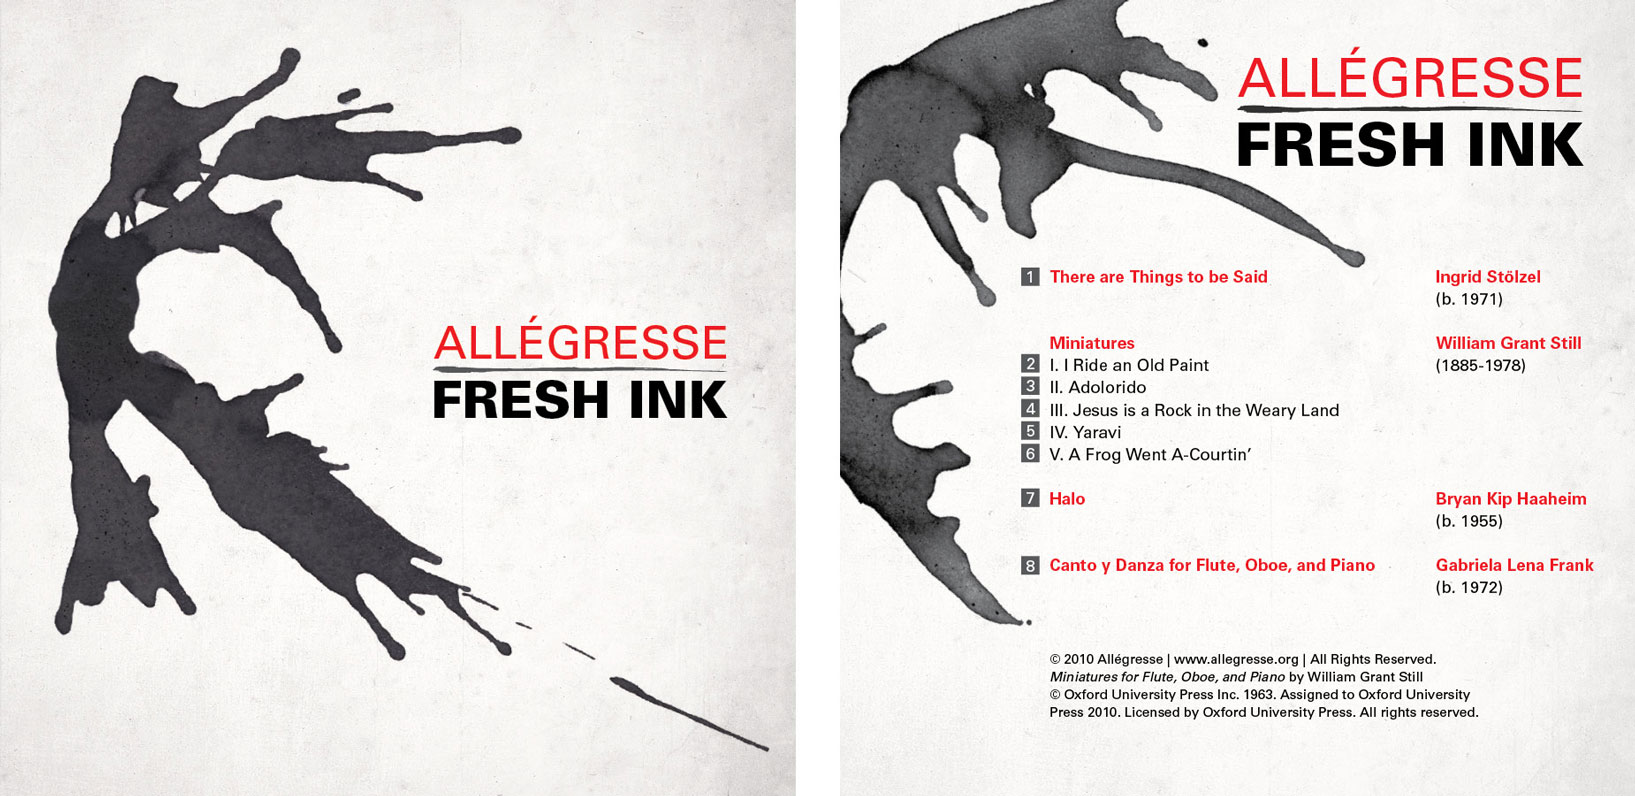 Allegresse - Fresh Ink album cover